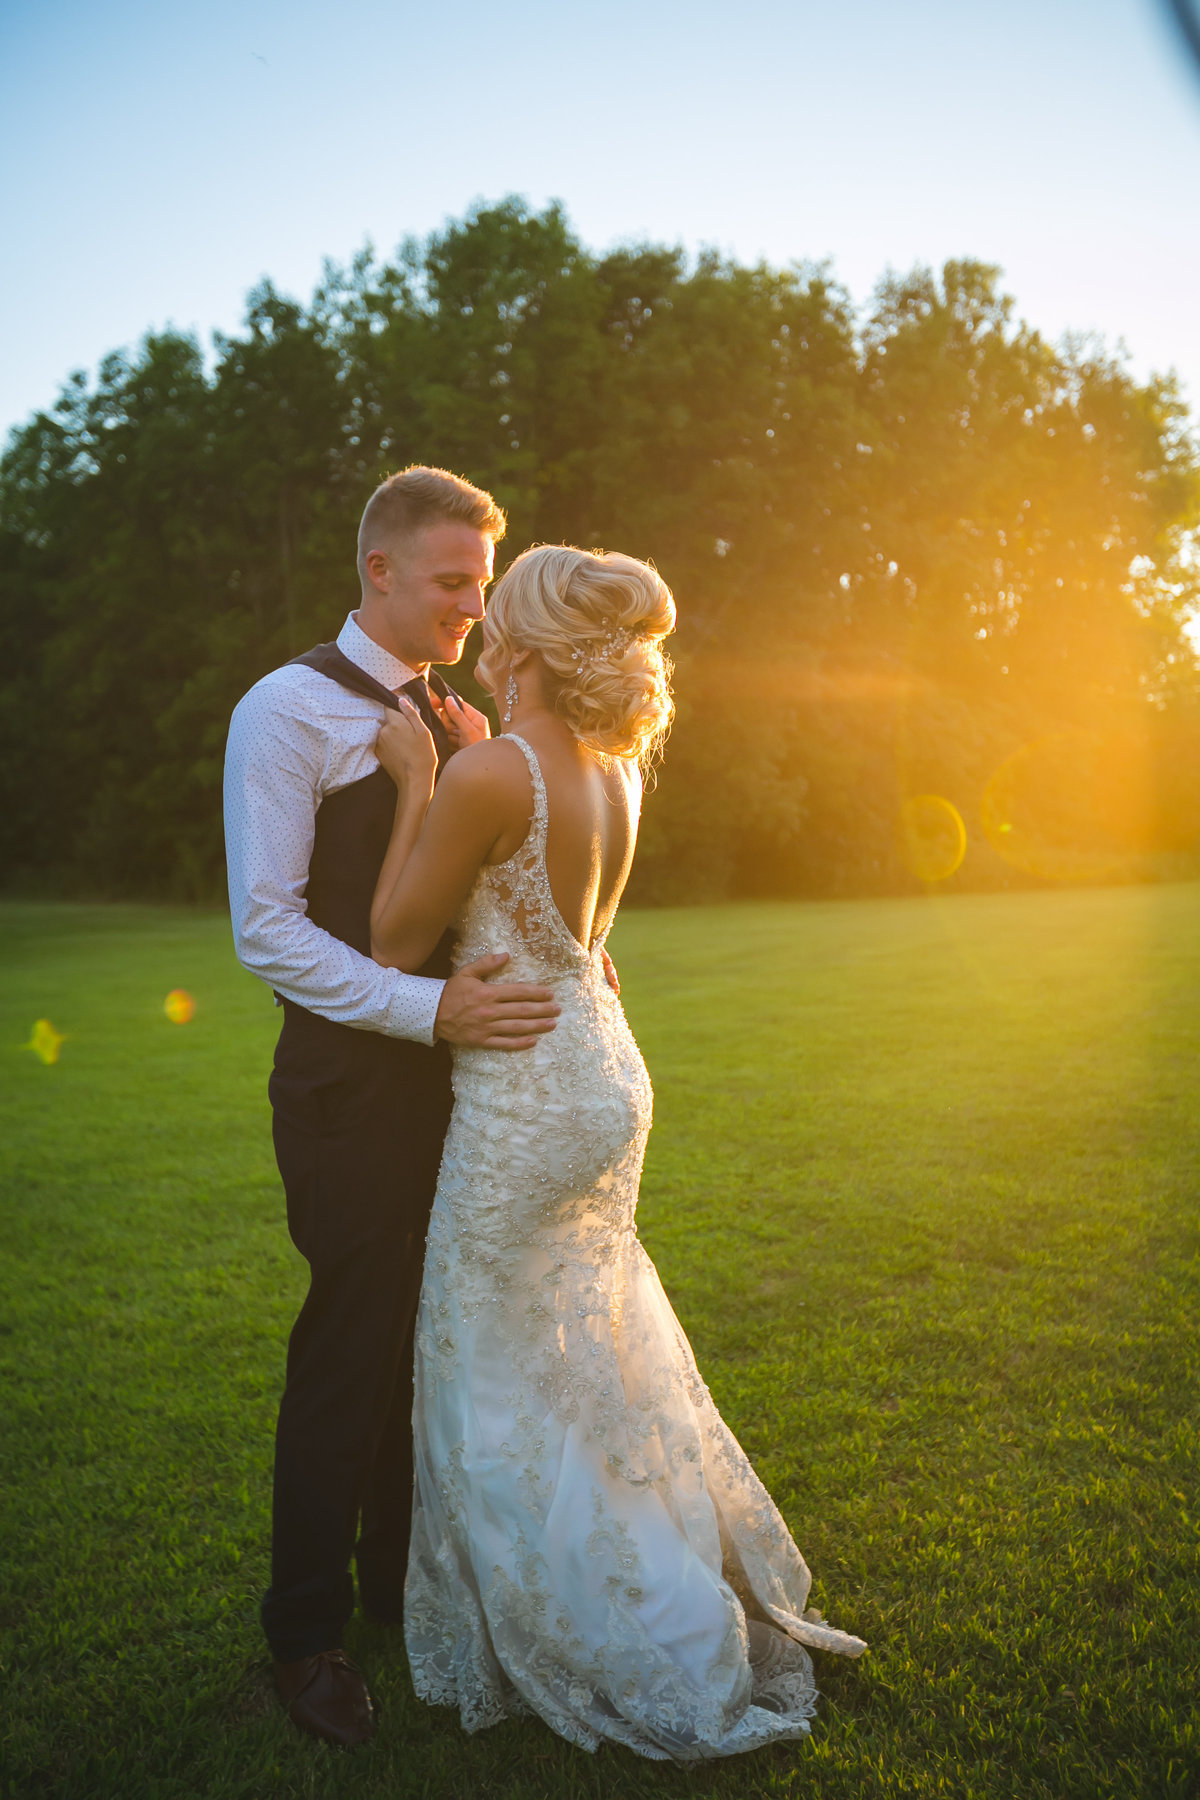 Jordan & Taylor's Outdoor Wisconsin Northwoods Wedding Photos by Amenson Studio-0210